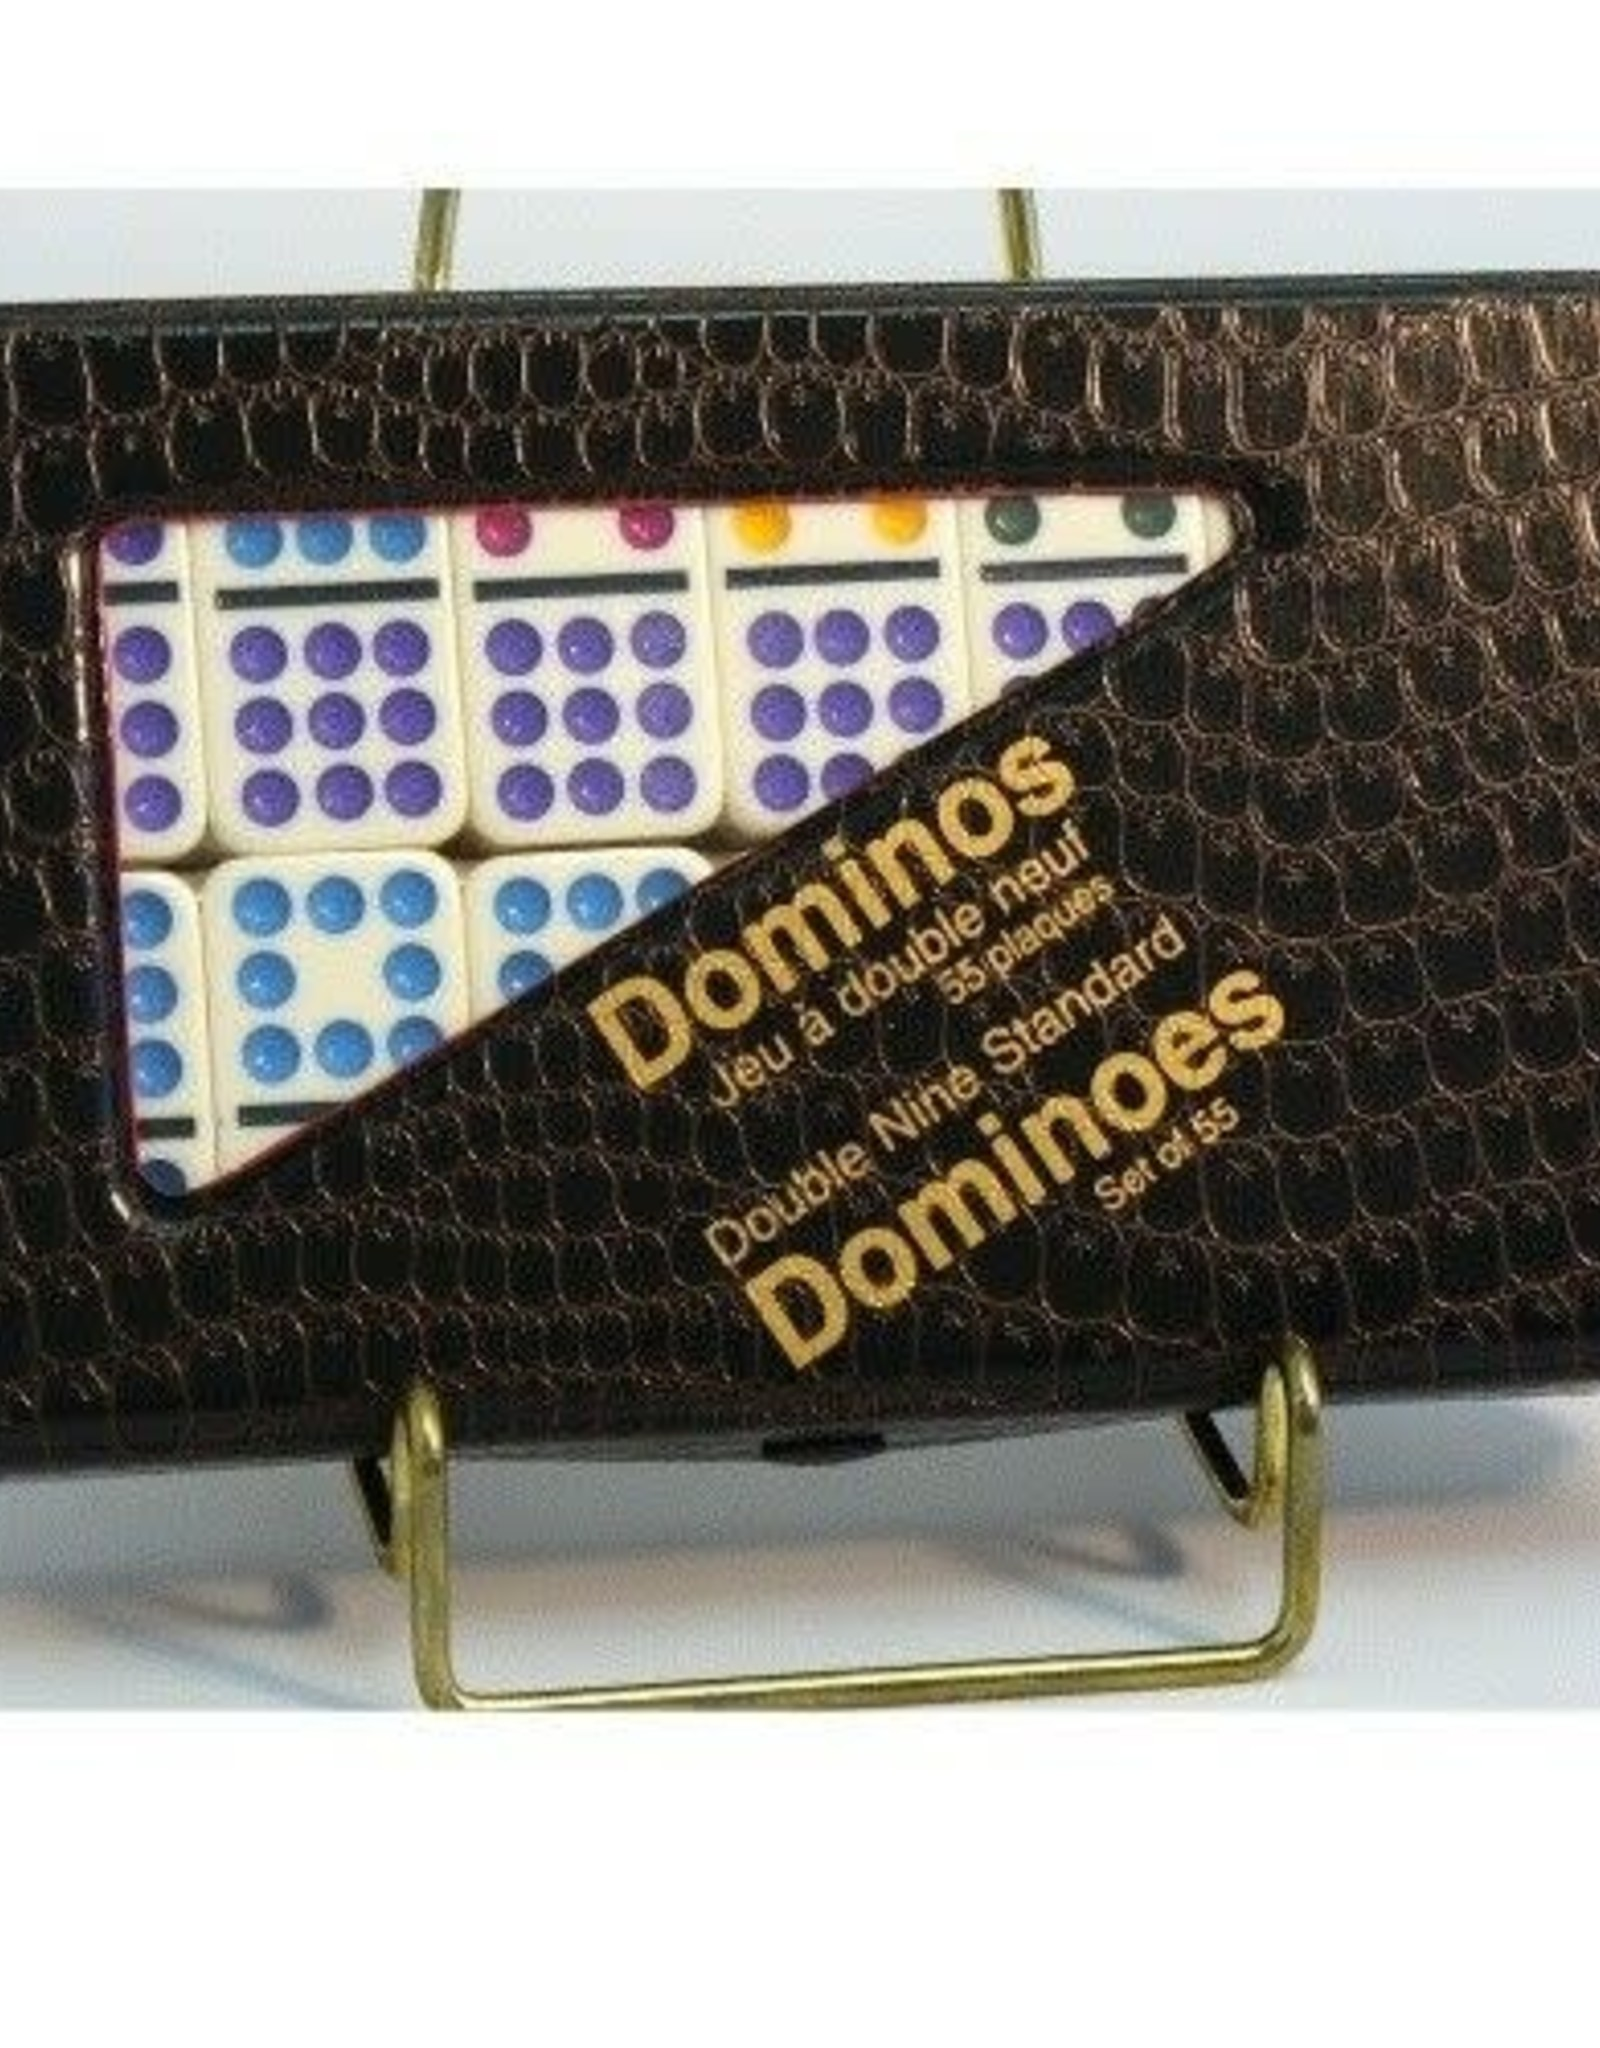 Double 9 Domino-Color Dot